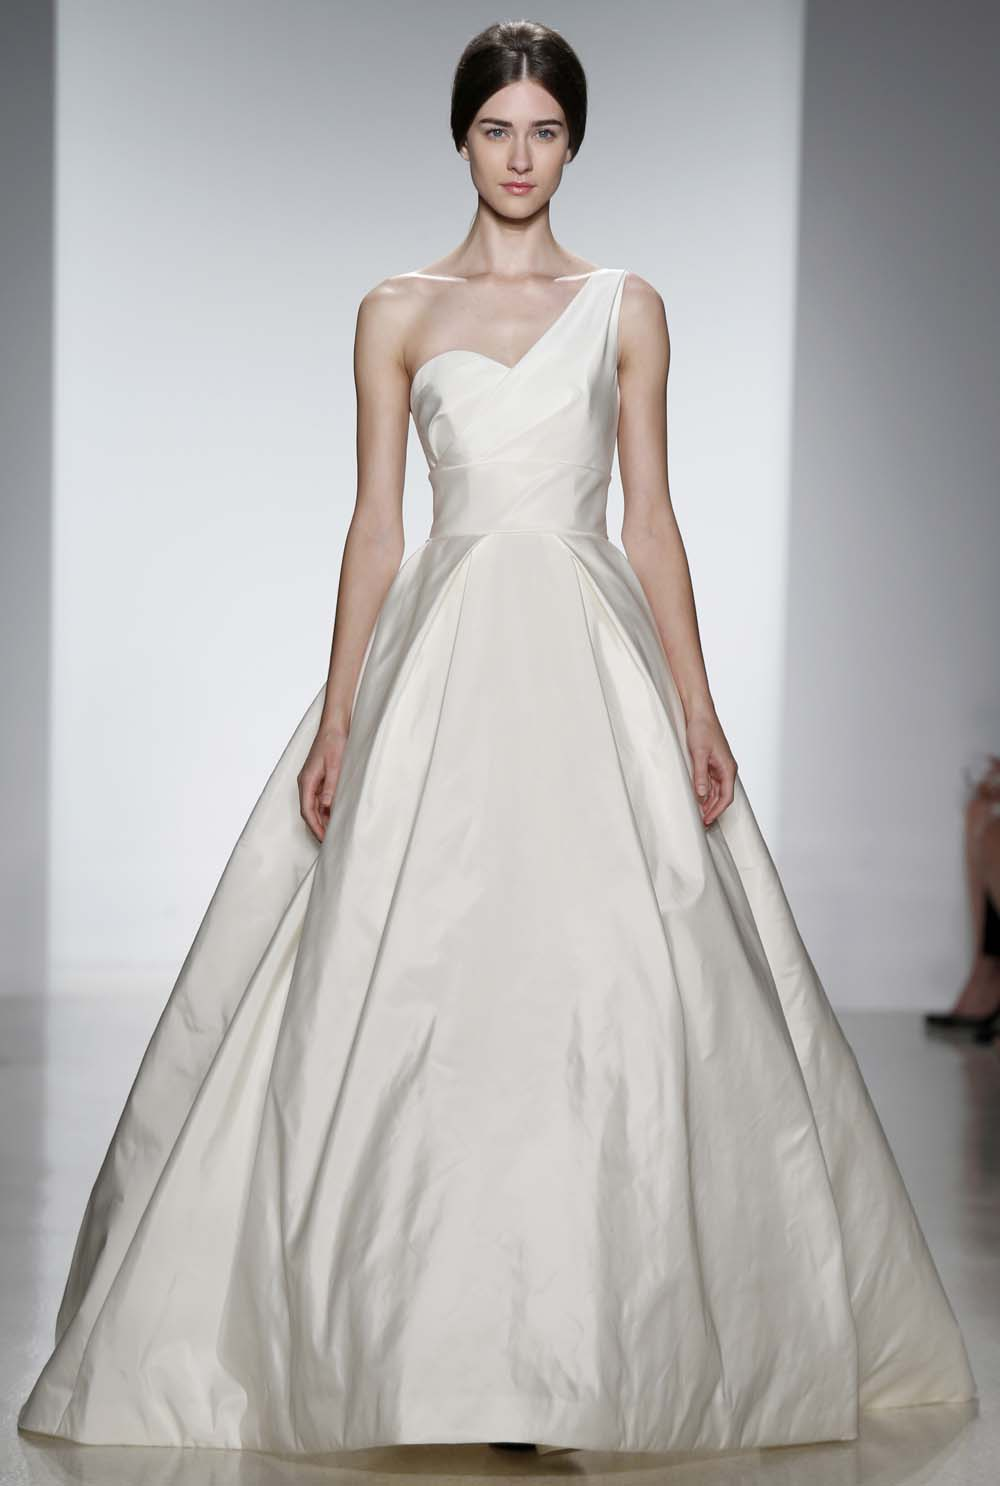 Daytime Wedding Dresses - Mother Of The Bride Dresses